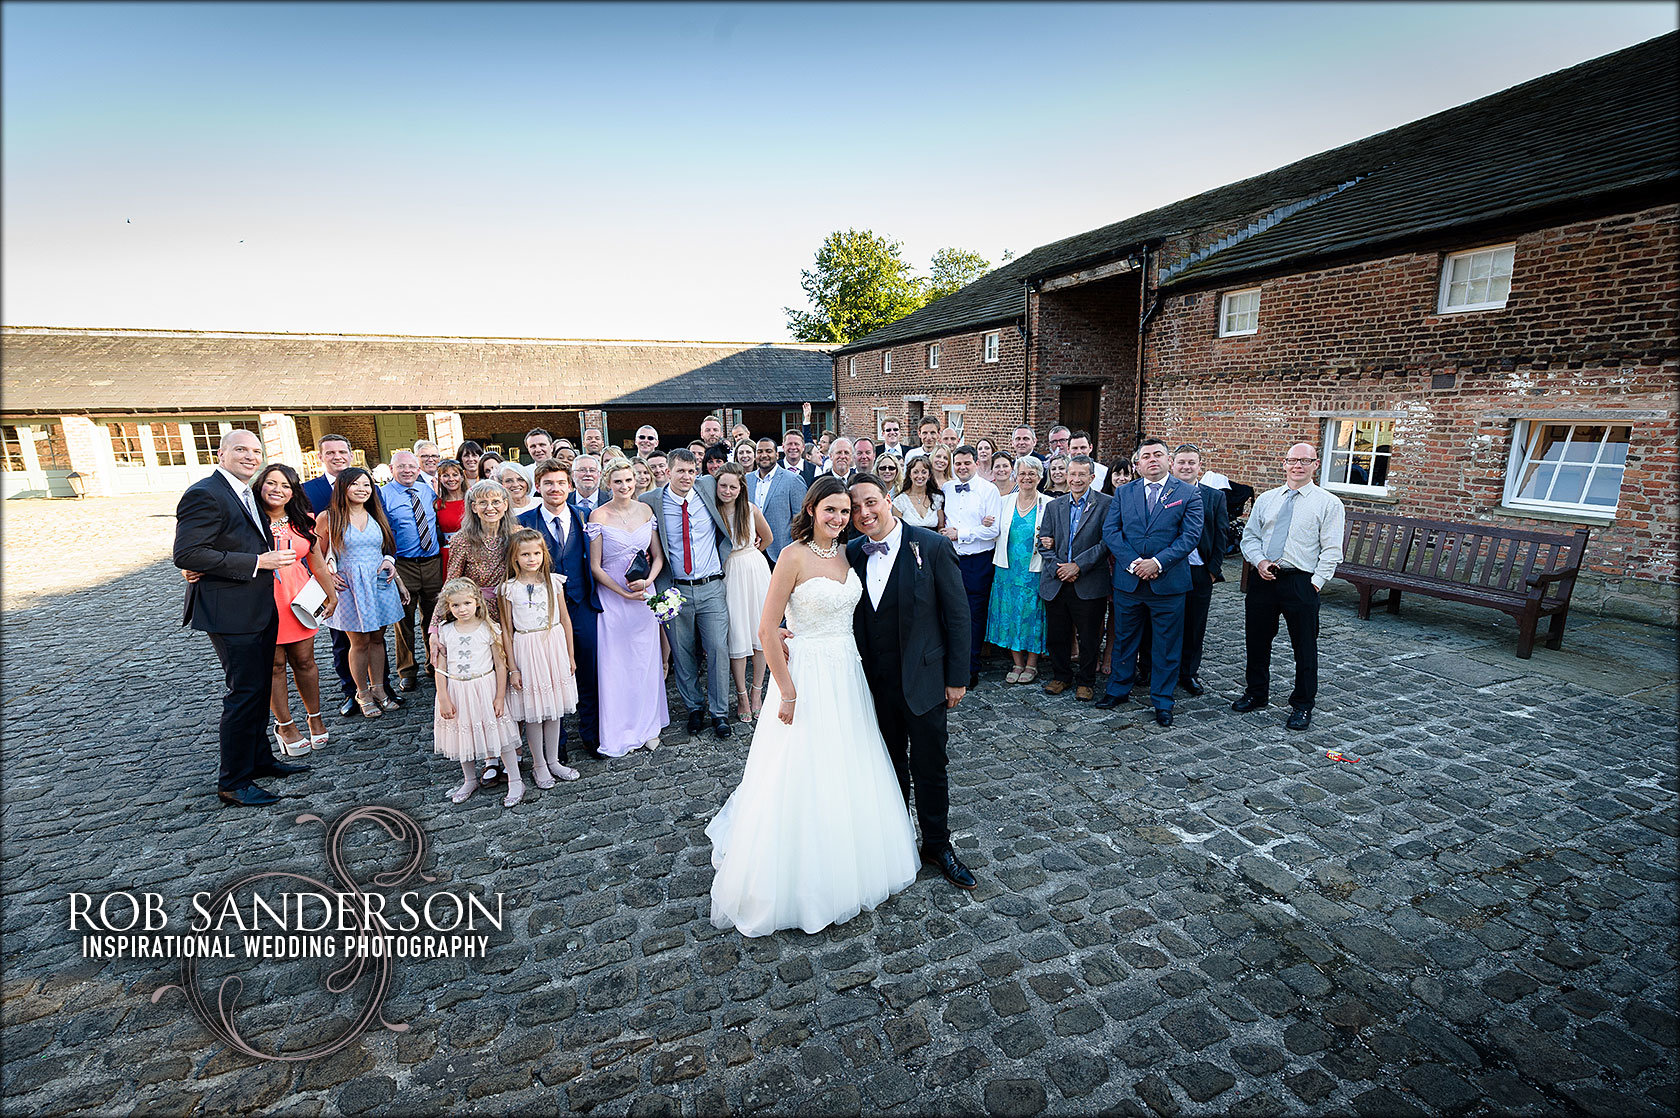 Rob Sanderson wedding photography at Meols hall